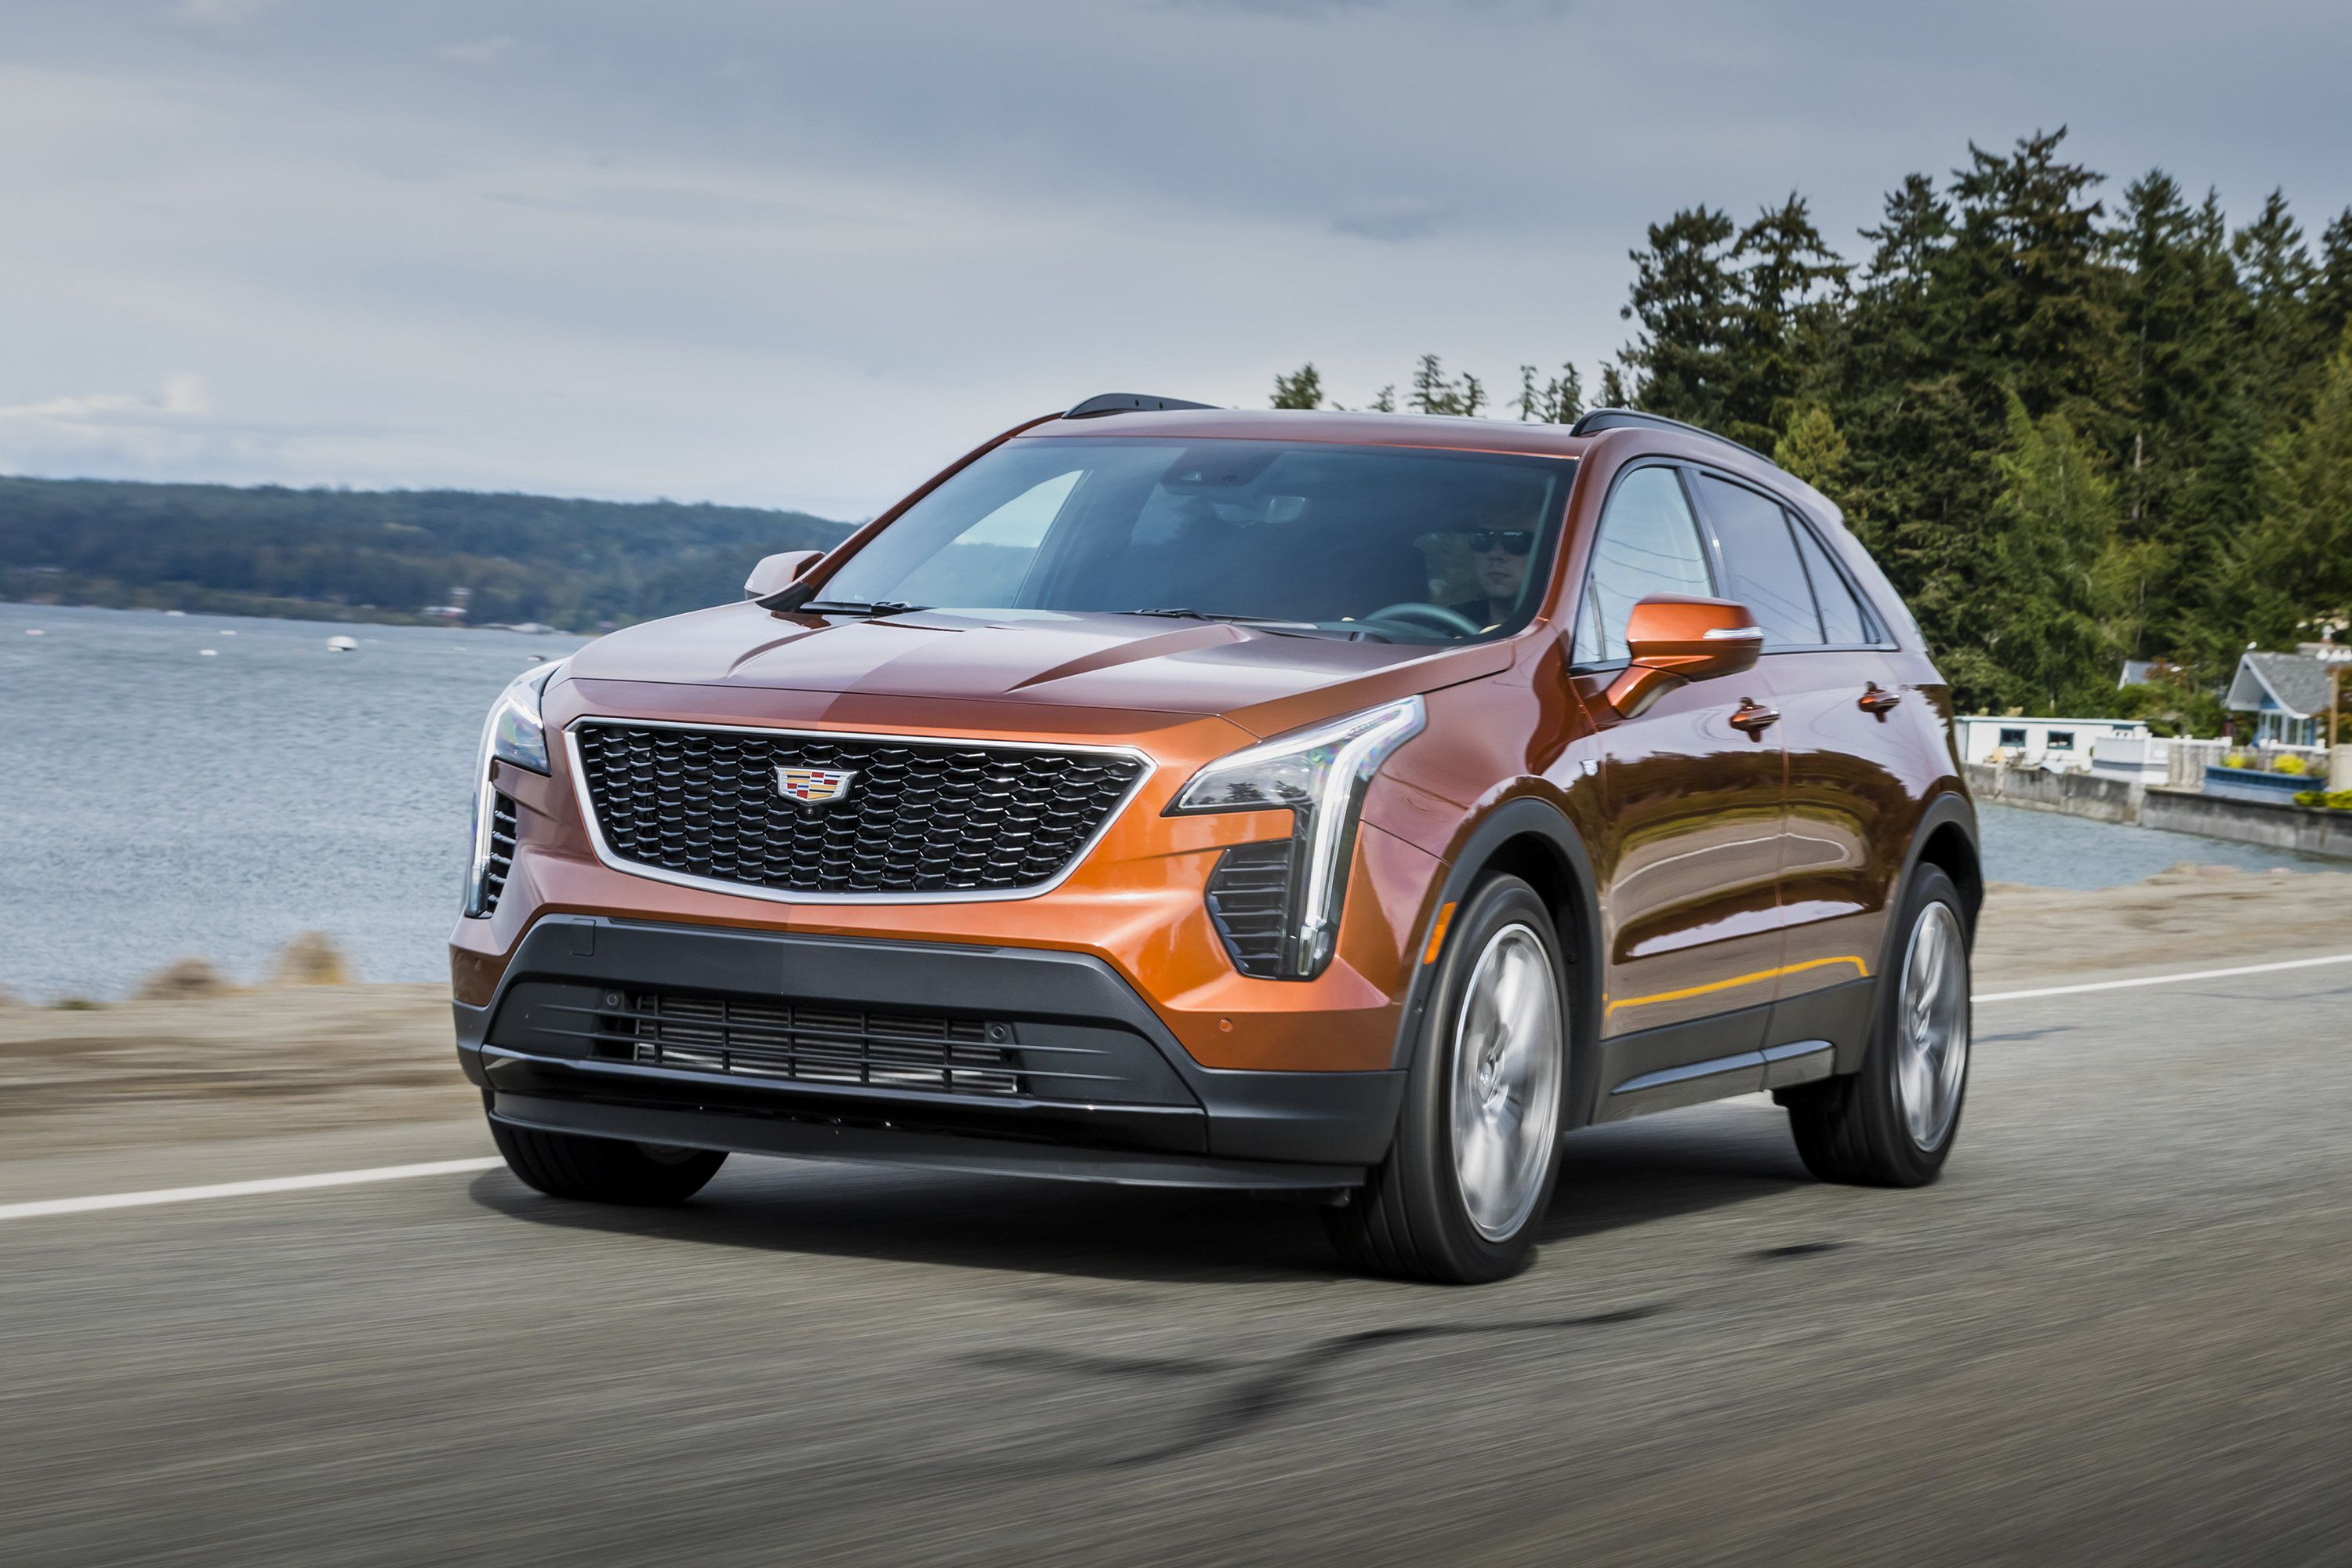 Review In Search Of A Stylish Higher Riding Luxury Suv The Globe And Mail